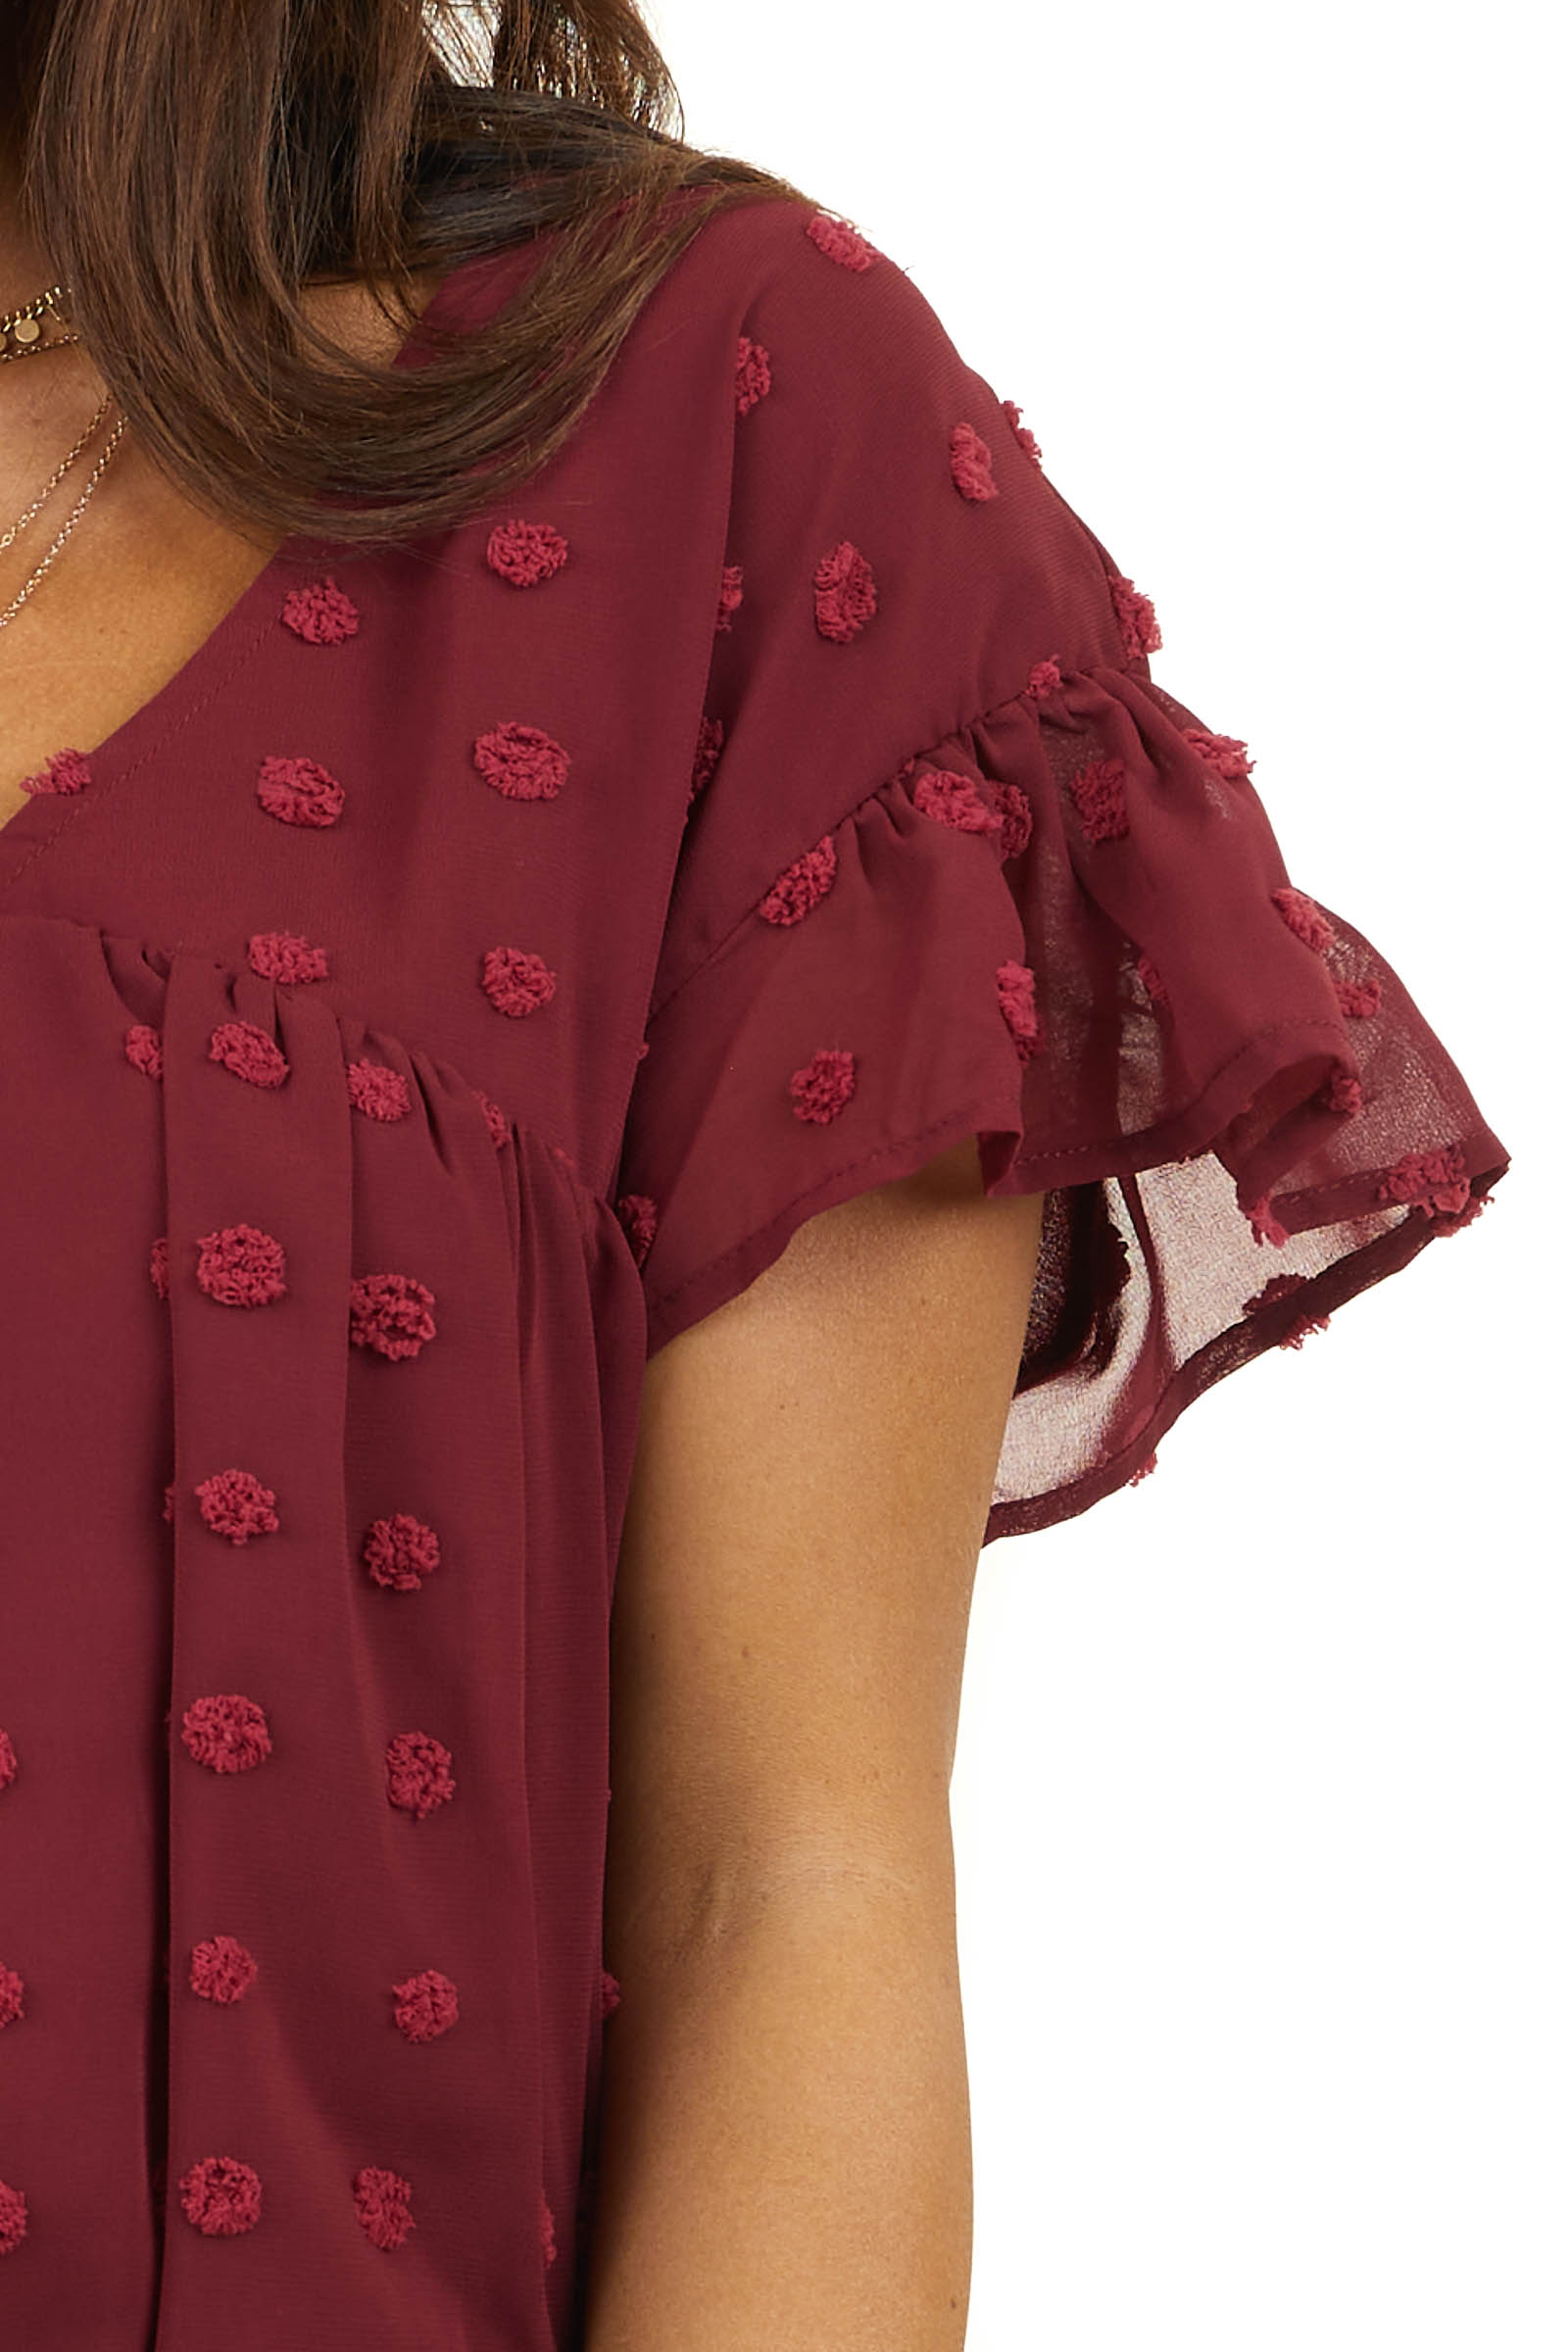 Wine Large Swiss Dot Babydoll Woven Top with Short Sleeves